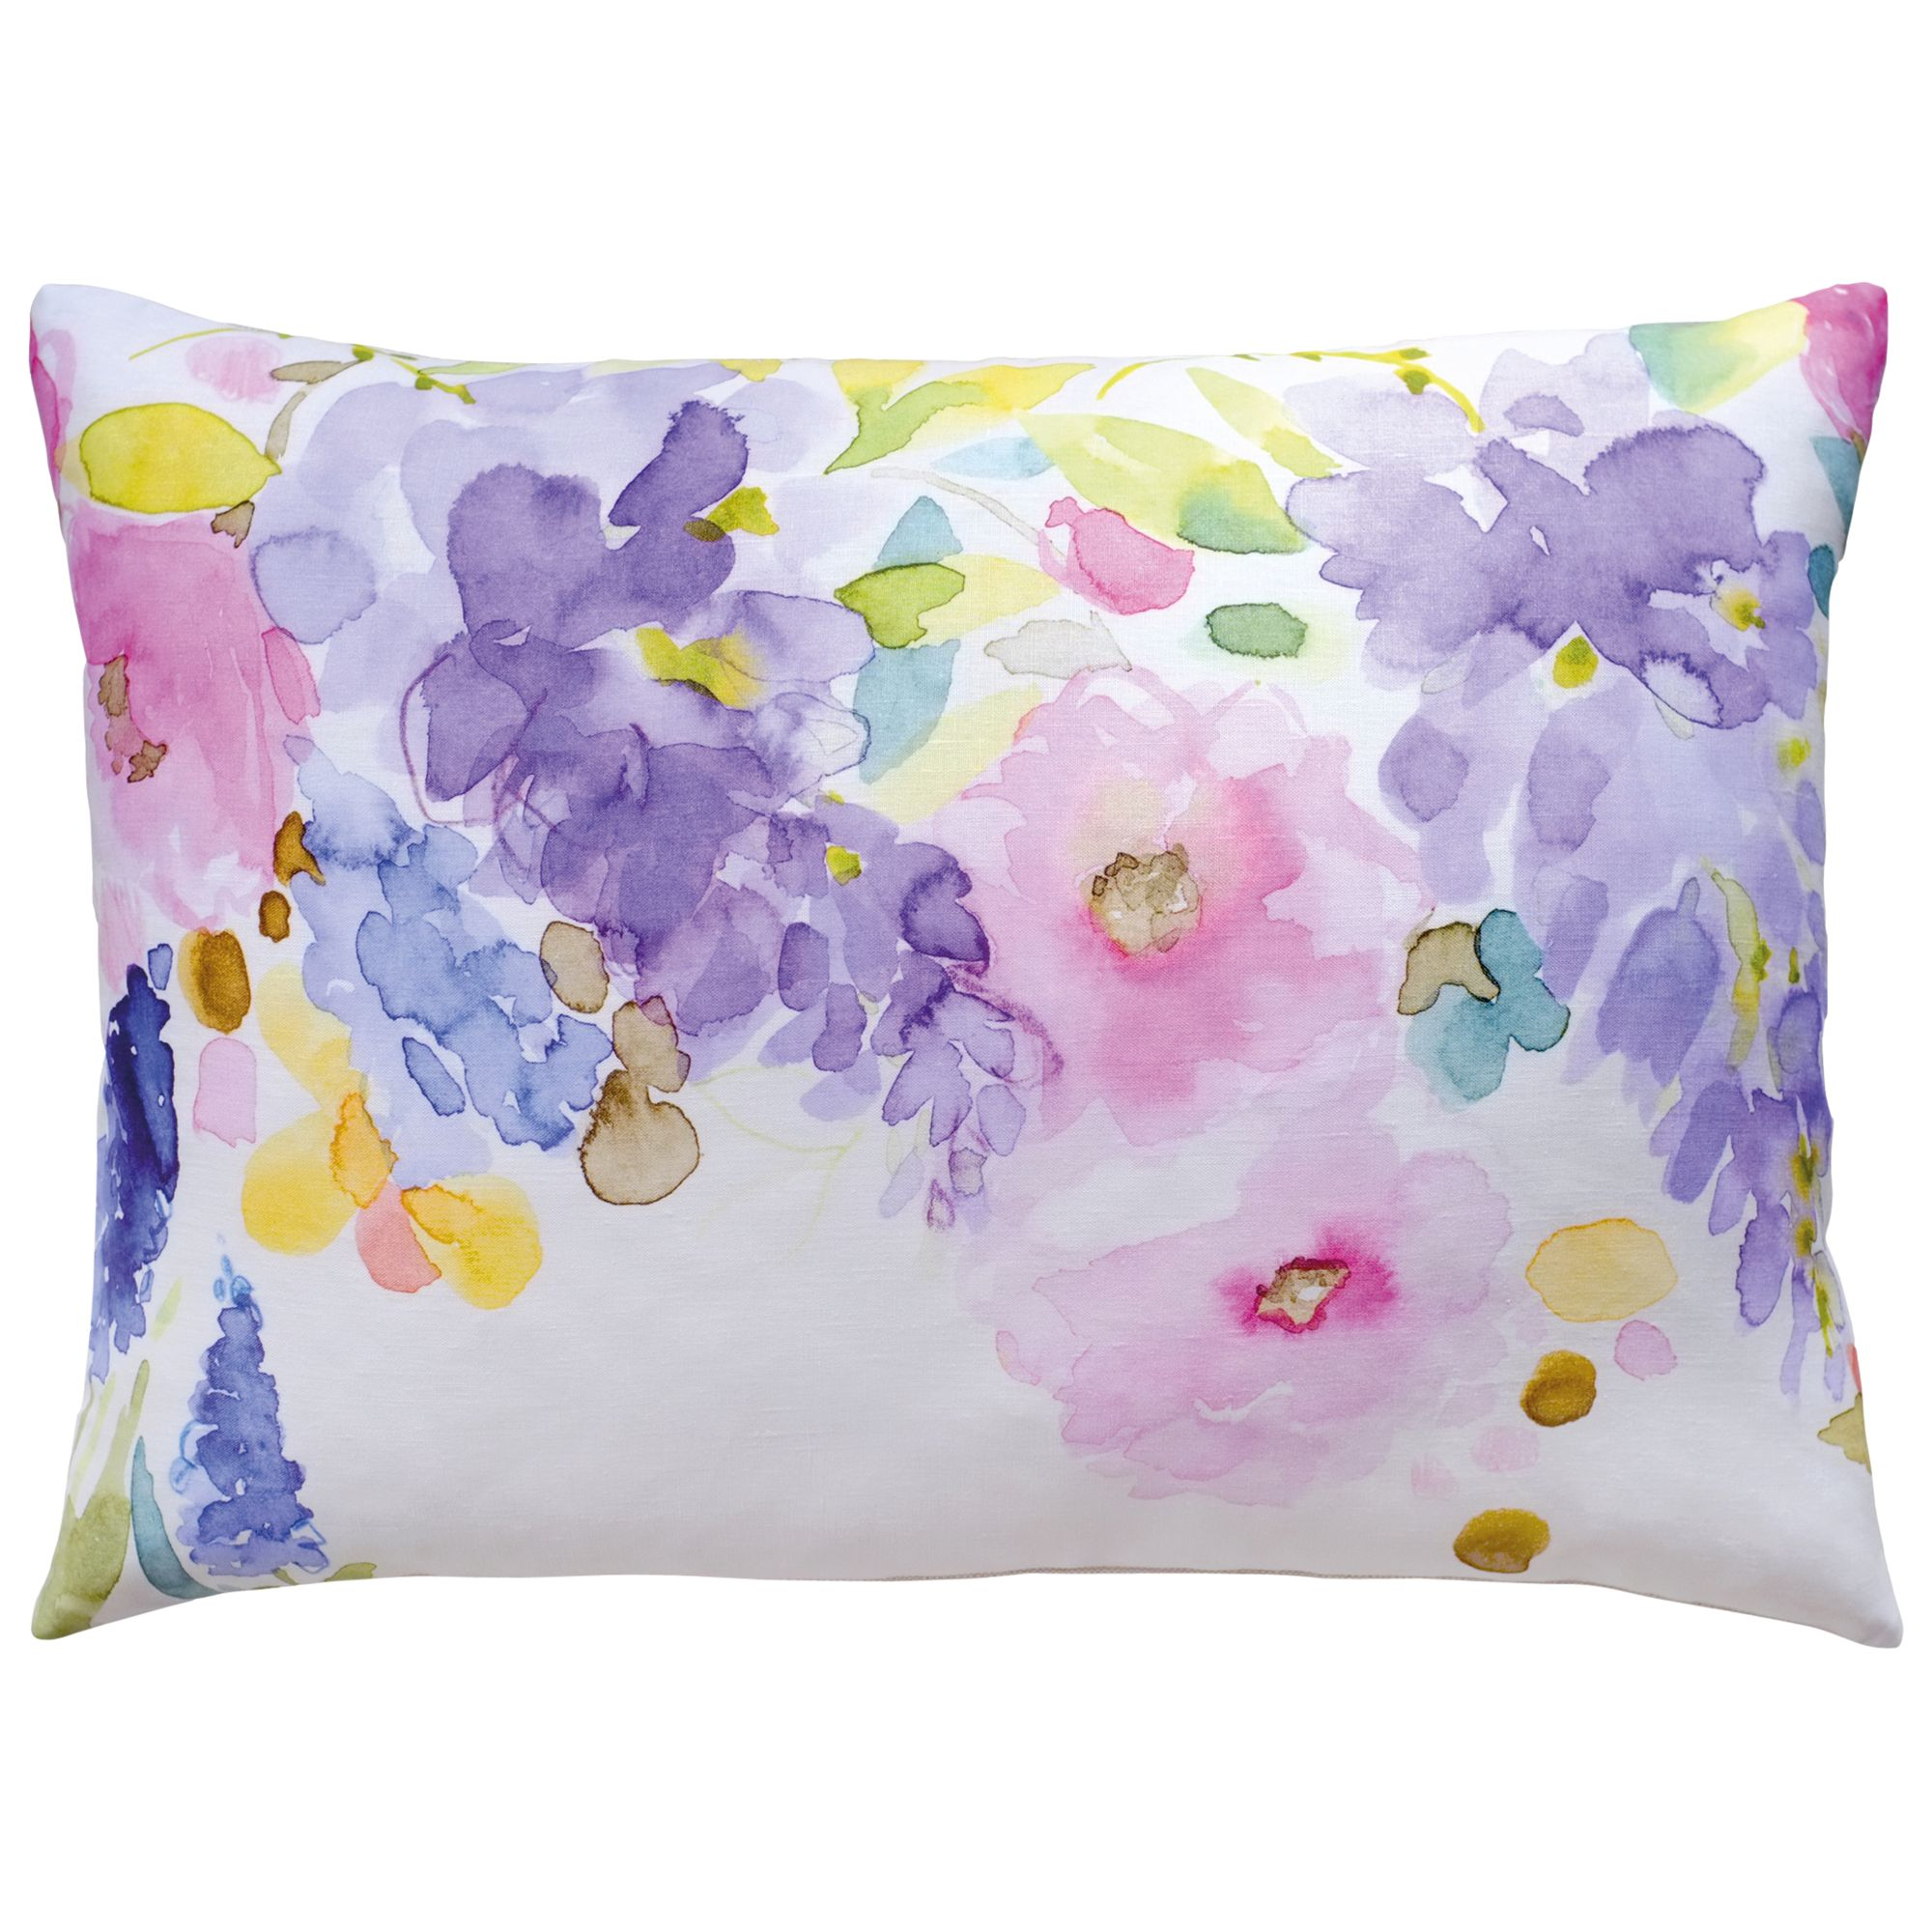 bluebellgray bluebellgray Wisteria Cushion, Multi